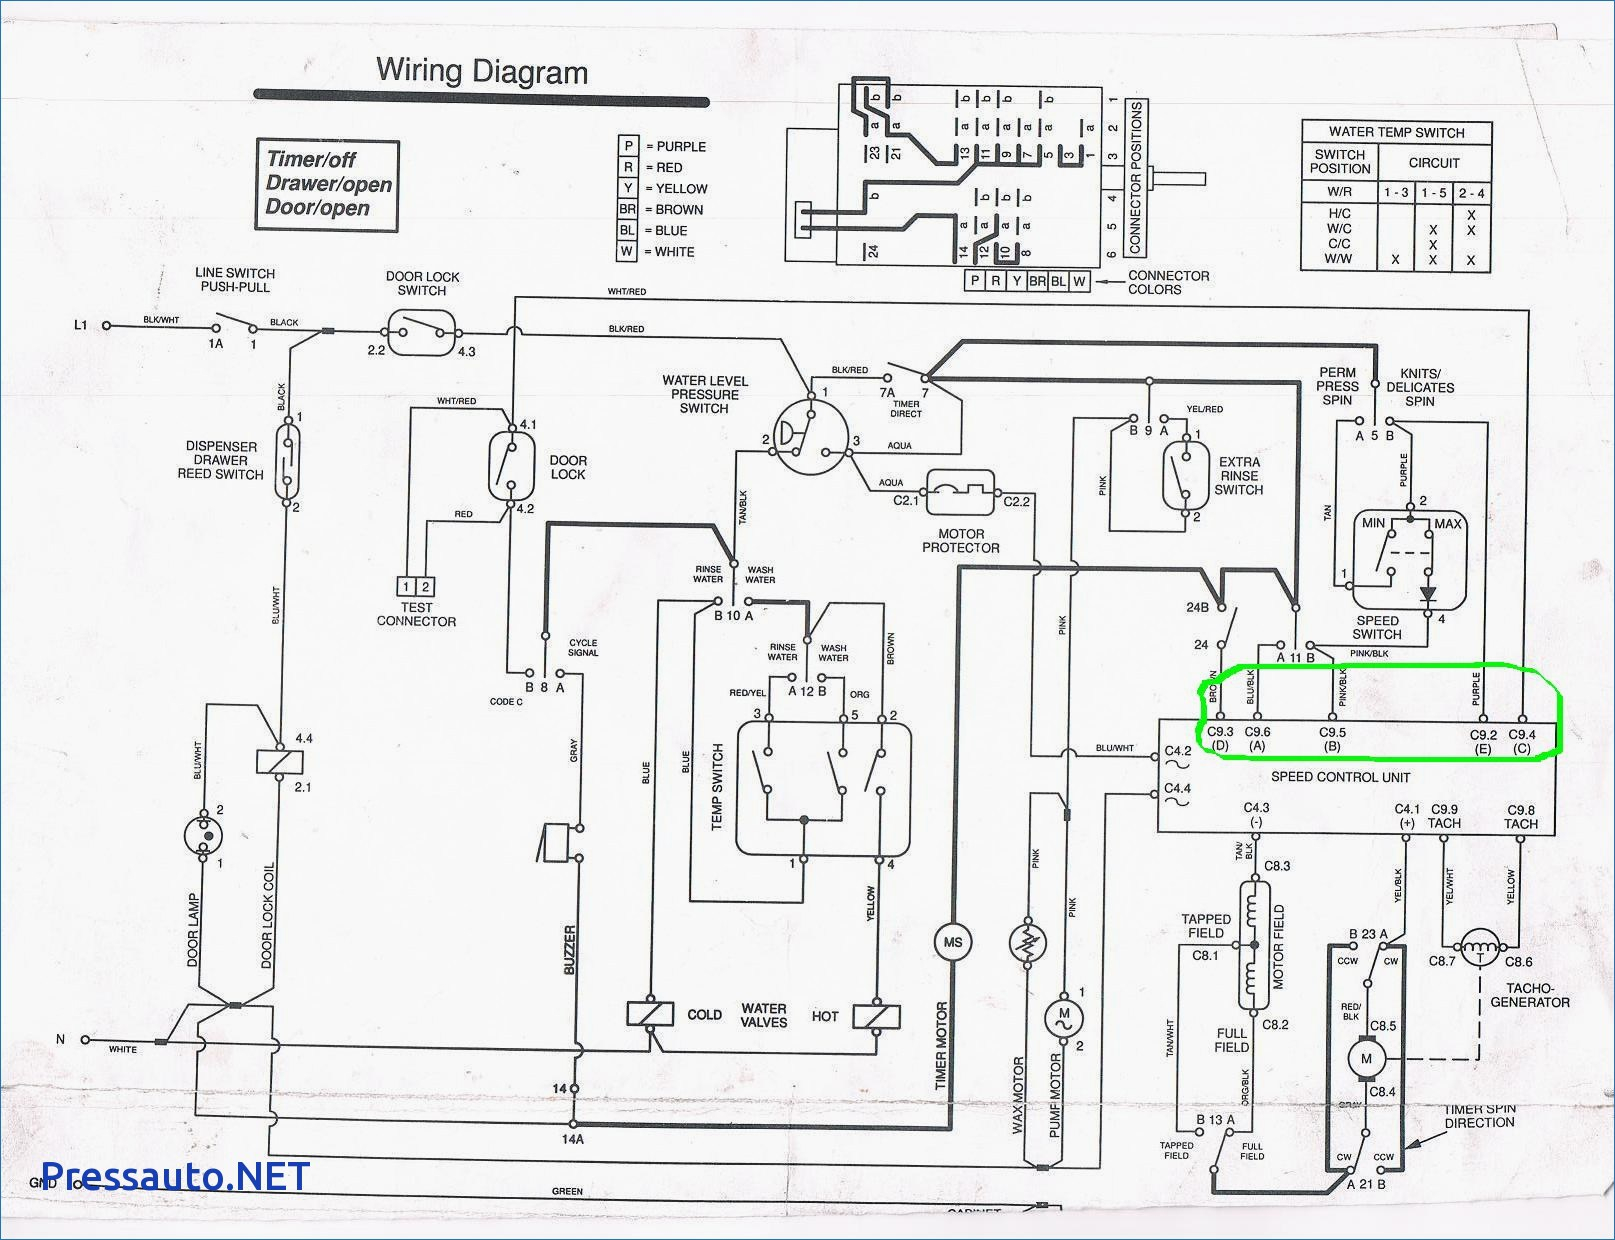 wiring diagram for whirlpool duet dryer heating element chinese 125cc belt